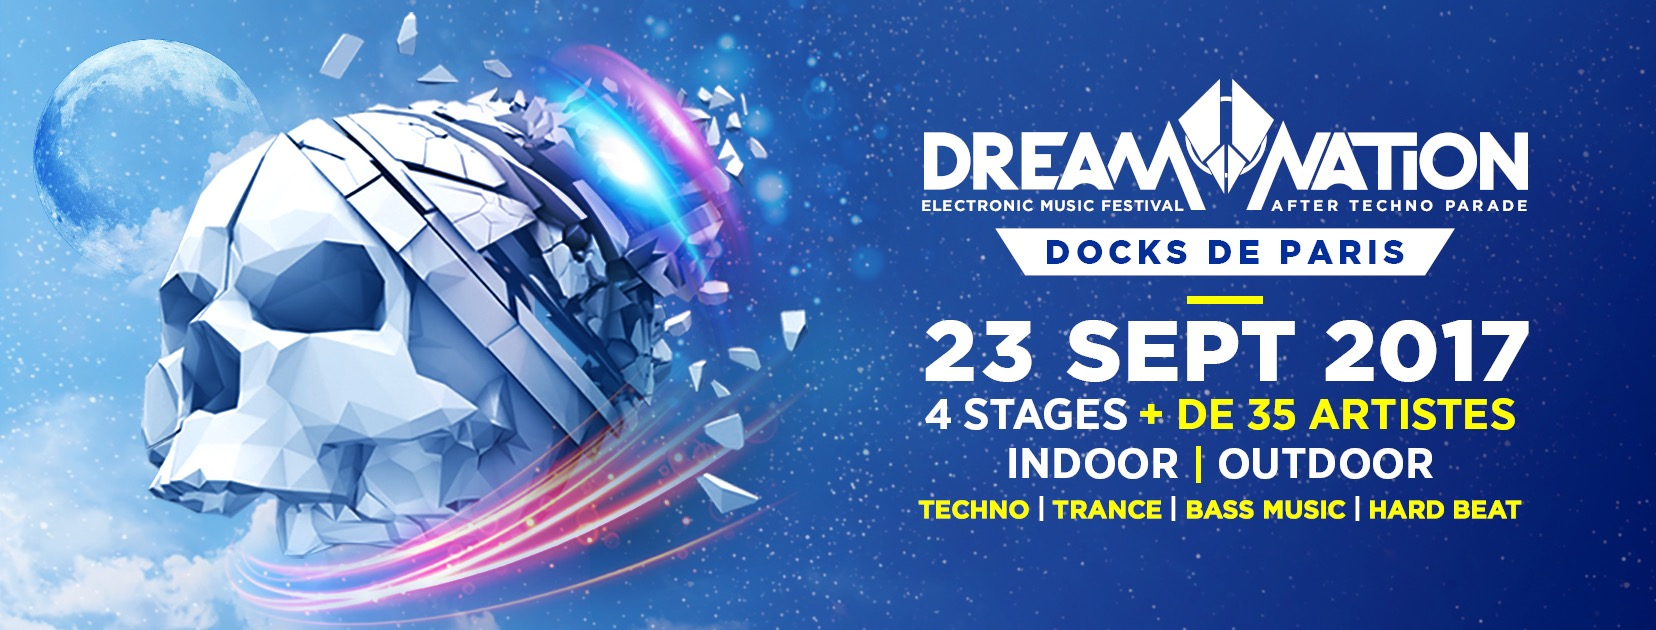 dream nation 2017